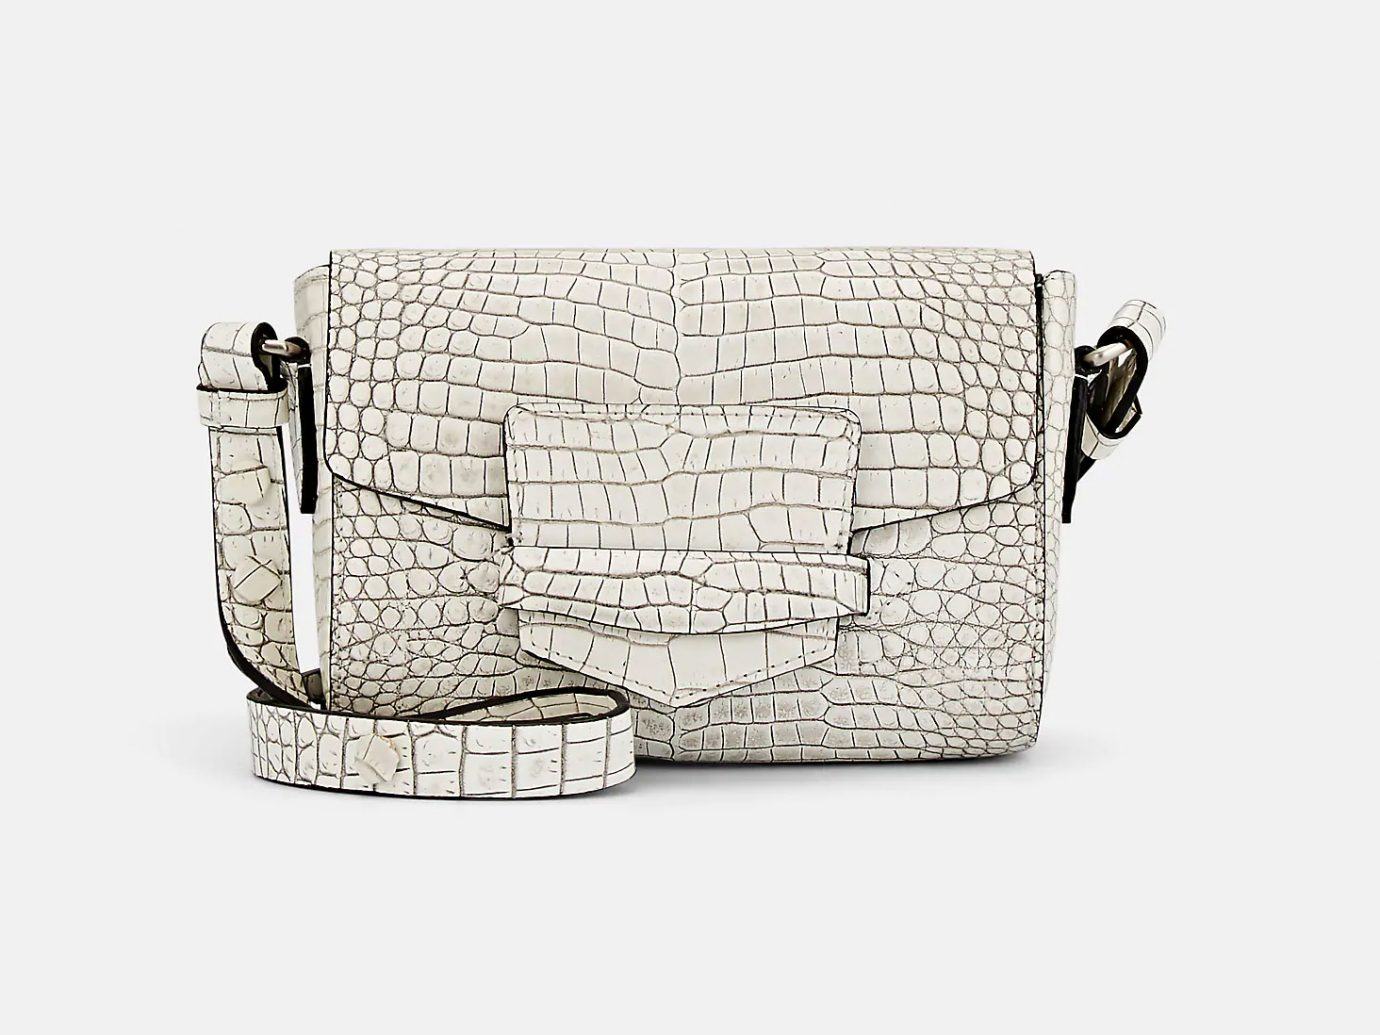 DRIES VAN NOTEN Crcodile-Embossed Leather Small Crossbody Bag